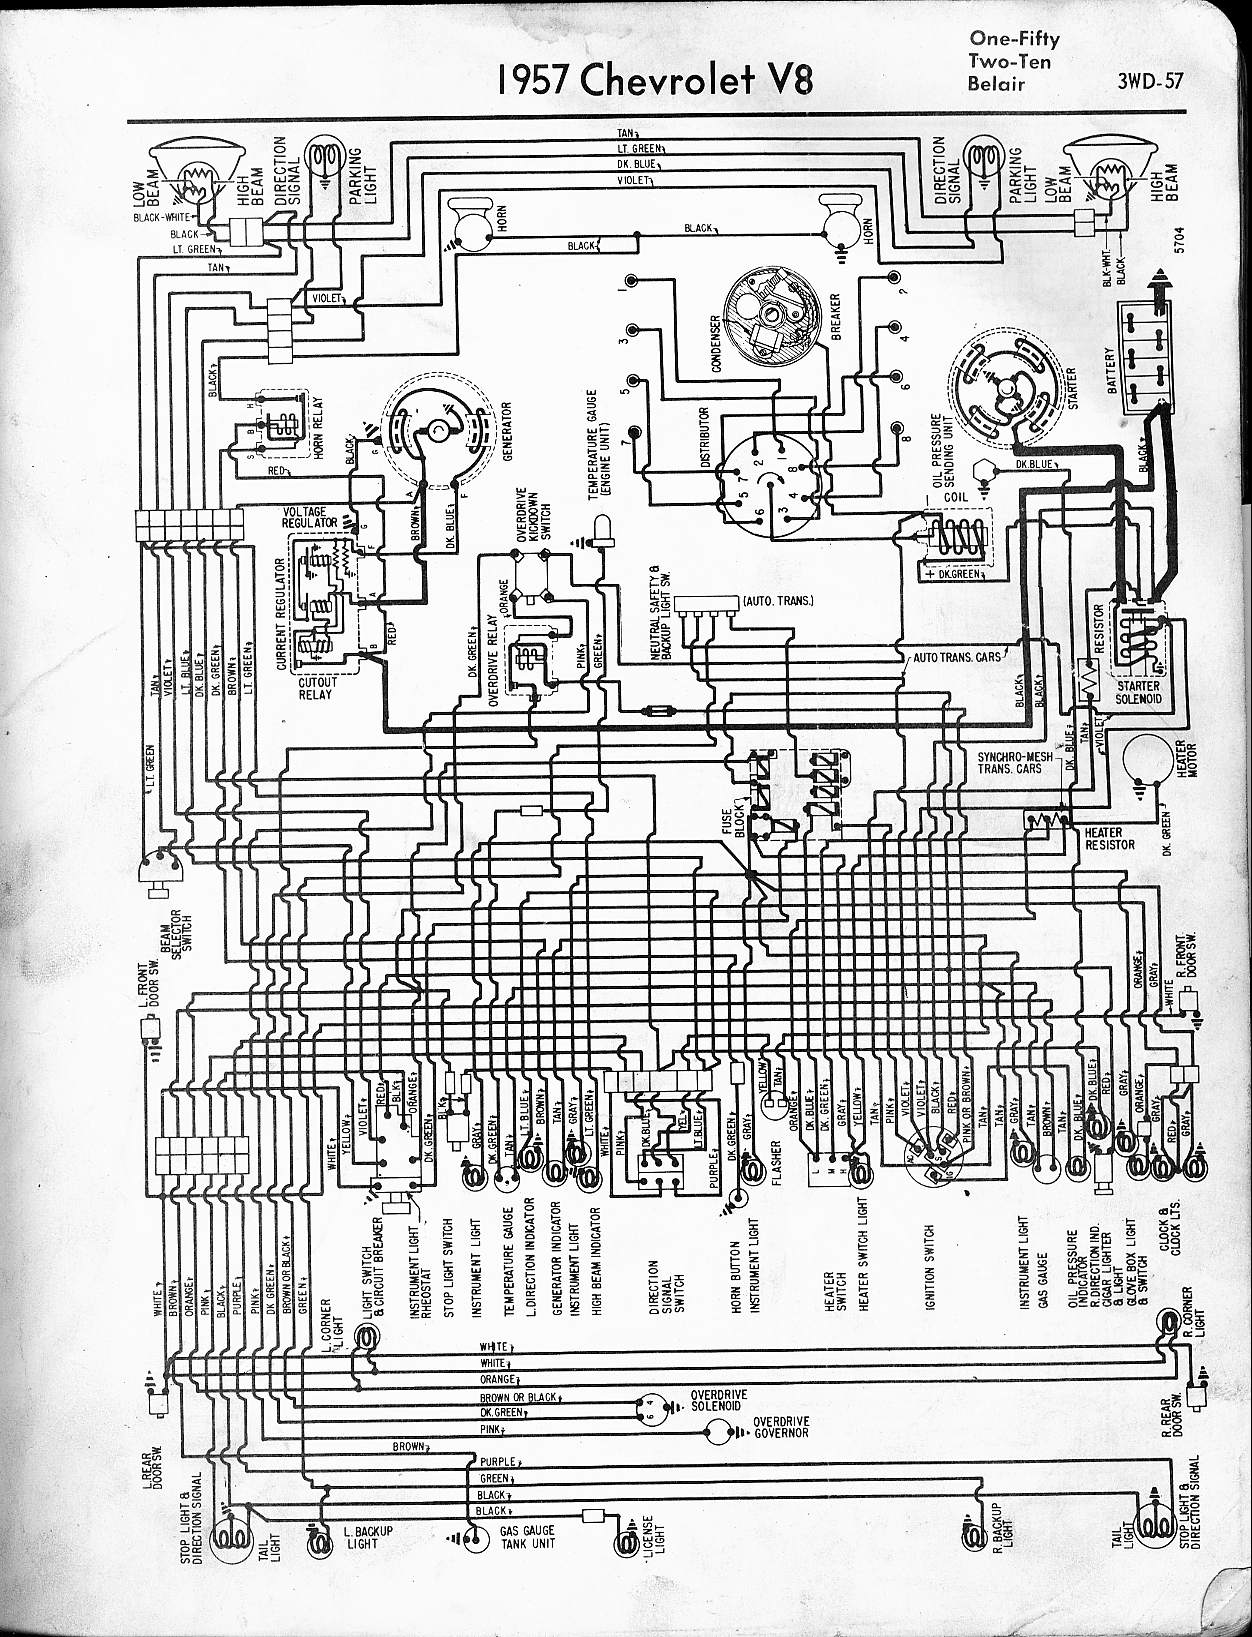 MWireChev57_3WD 057 57 65 chevy wiring diagrams 1956 chevy wiring diagram at readyjetset.co